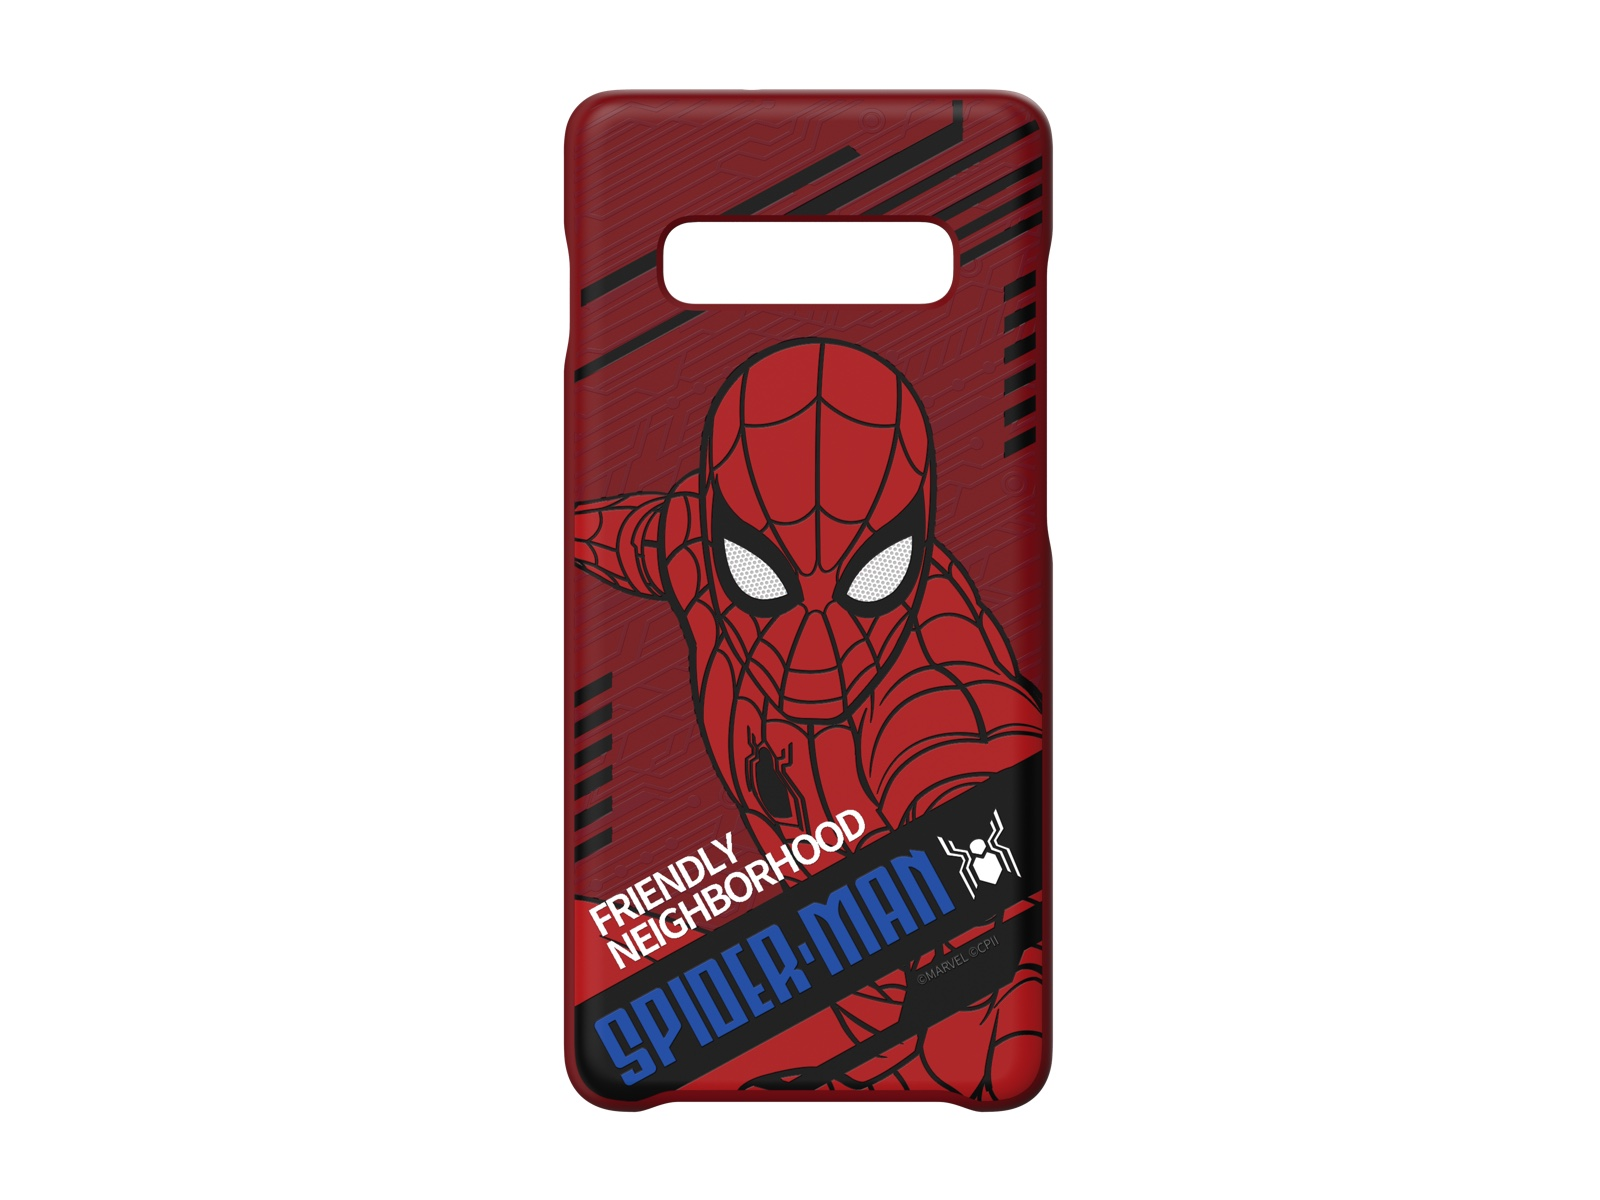 Galaxy Friends Spider-Man Far From Home Smart Cover for Galaxy S10+